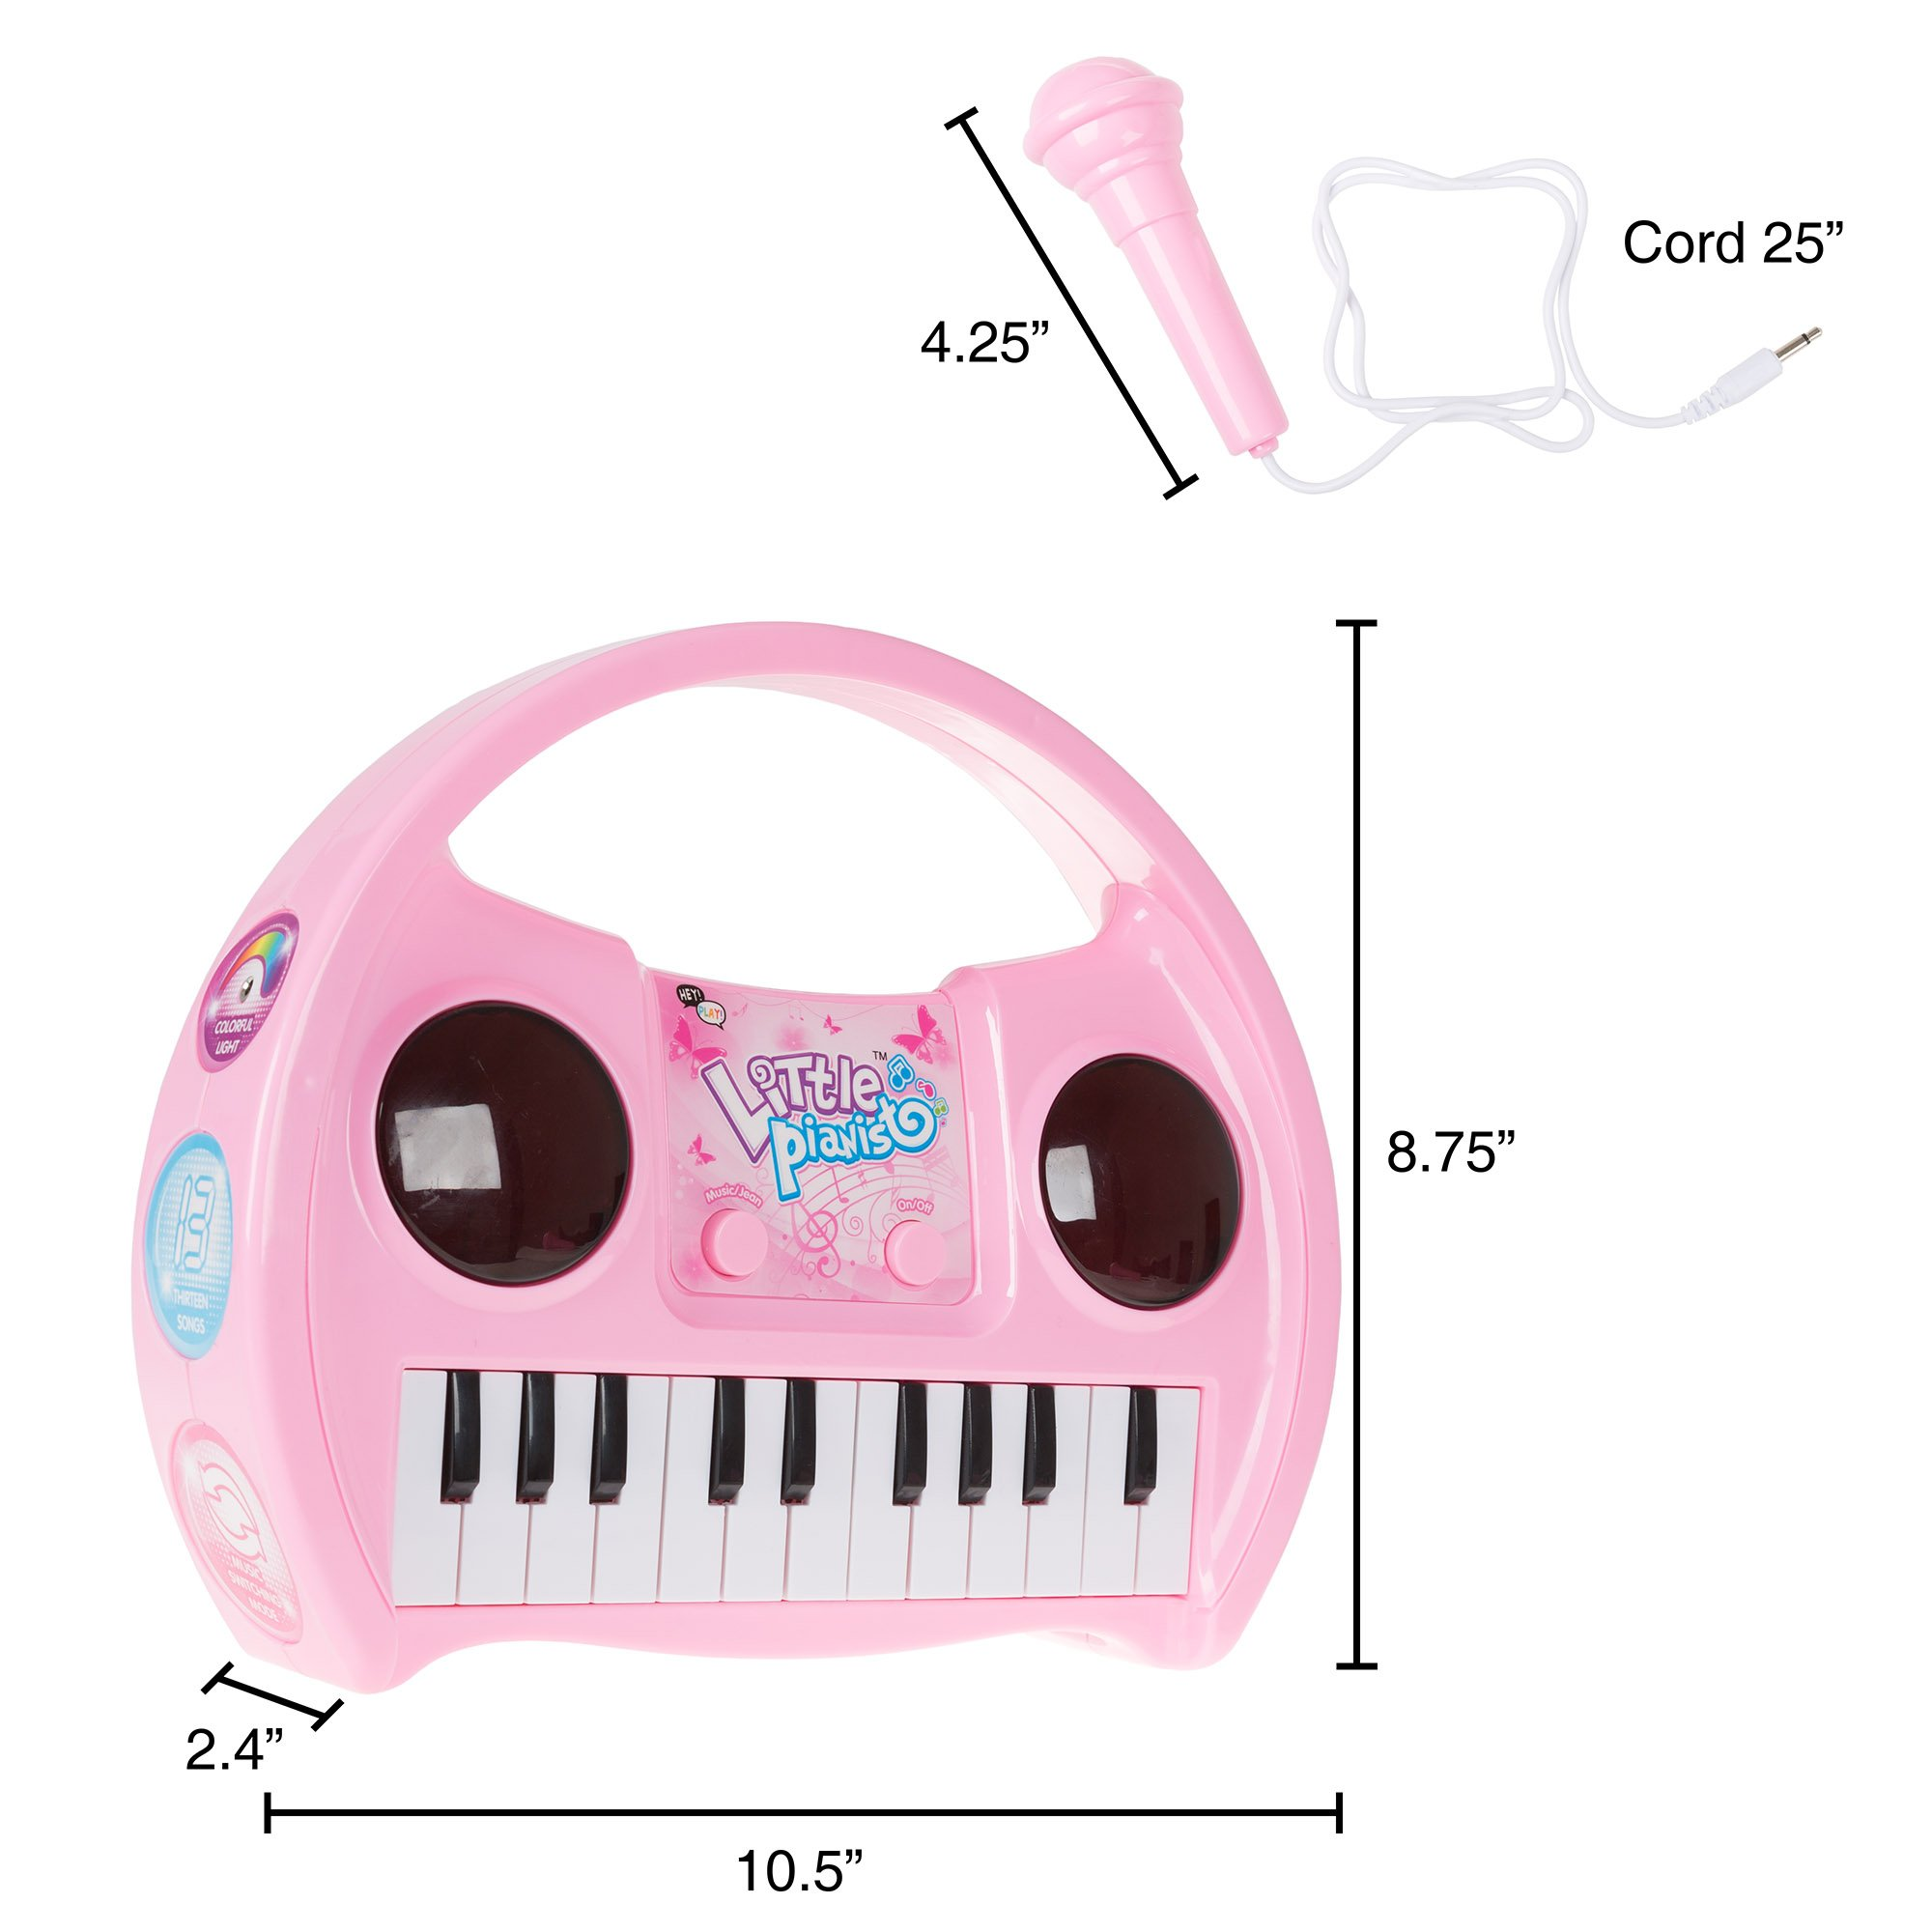 Kids Karaoke Machine with Microphone, Includes Musical Keyboard & Lights - Battery Operated Portable Singing Machine for Boys and Girls by Hey! Play! by Hey!Play! (Image #1)